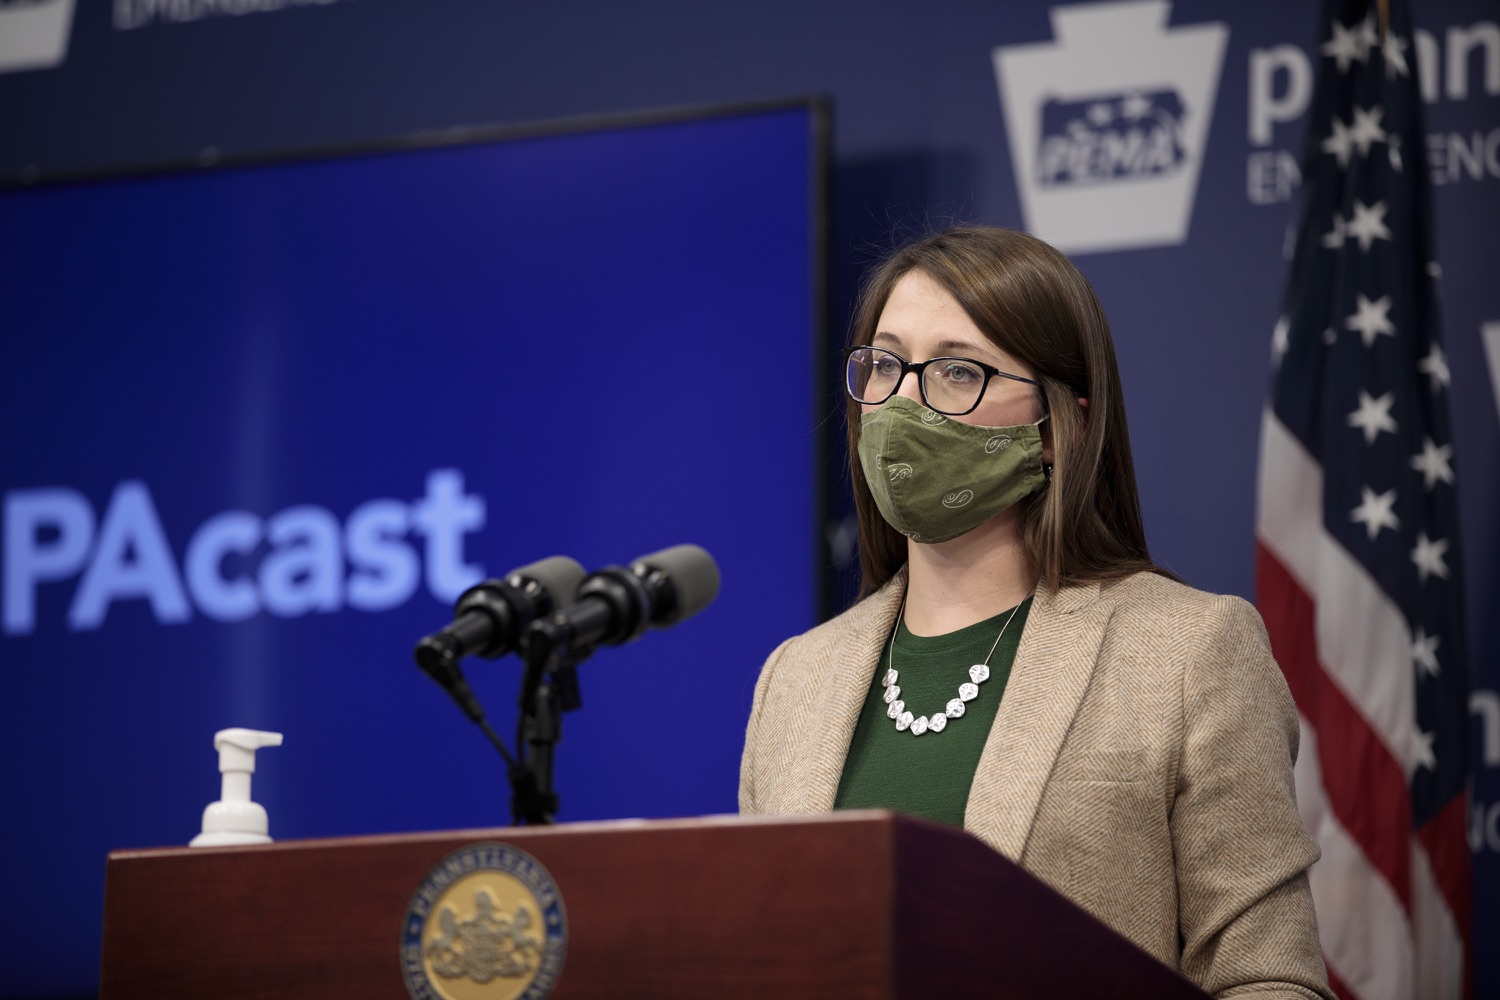 """<a href=""""https://filesource.wostreaming.net/commonwealthofpa/photo/18524_doh_vaccine_dz_01.JPG"""" target=""""_blank"""">⇣Download Photo<br></a>Department of Health Senior Advisor Lindsey Mauldin speaking at the press conference.  The Pennsylvania Department of Health today launched a new tool called Your Turn to help Pennsylvanians understand where they fall in the vaccine prioritization effort and to be alerted when it is their turn to schedule an appointment for the COVID-19 vaccine.  Harrisburg, PA  February 9, 2021"""